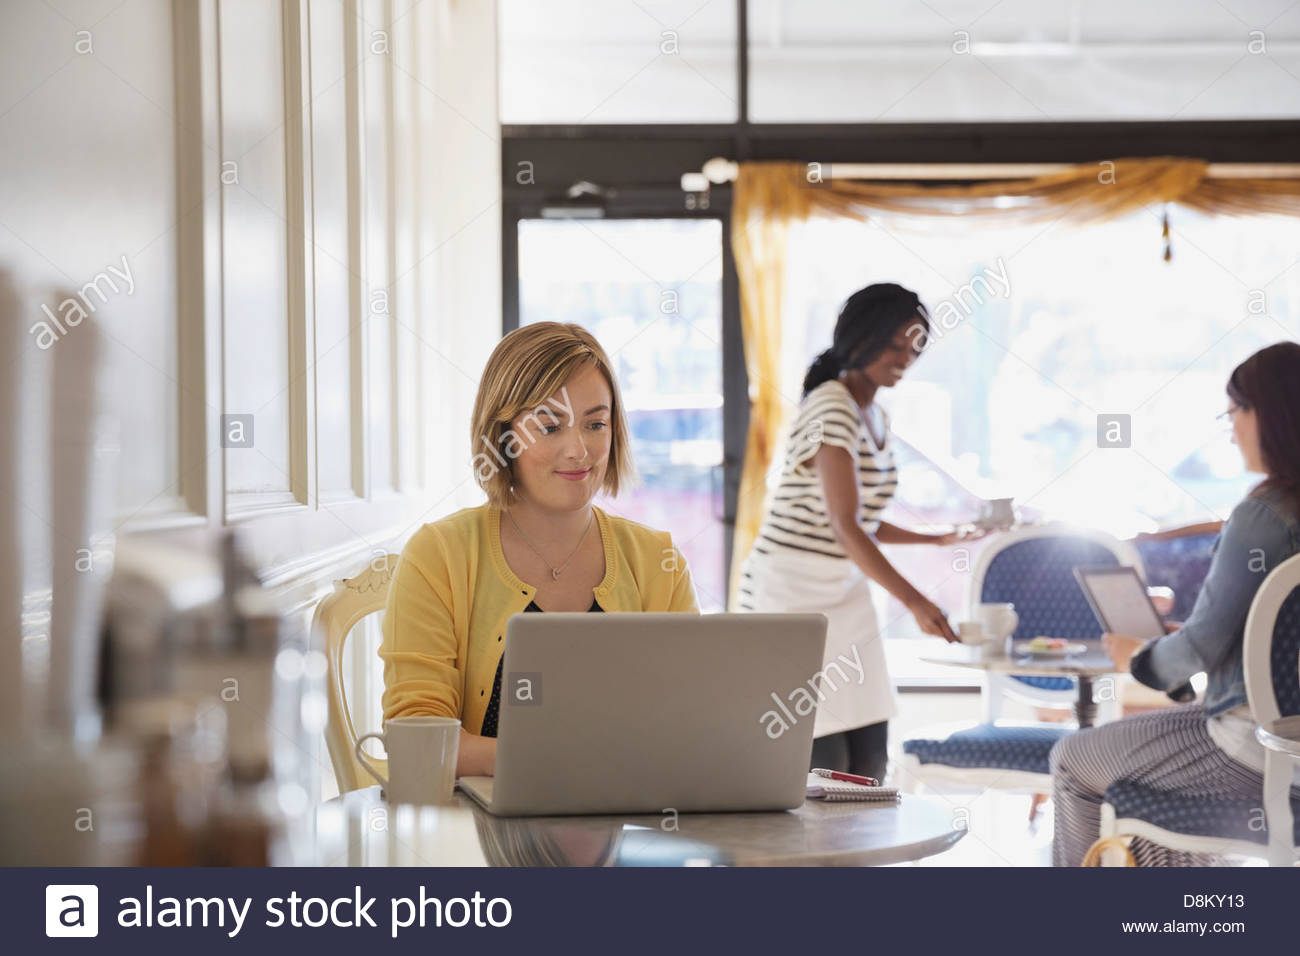 Women using technology at coffee shop - Stock Image